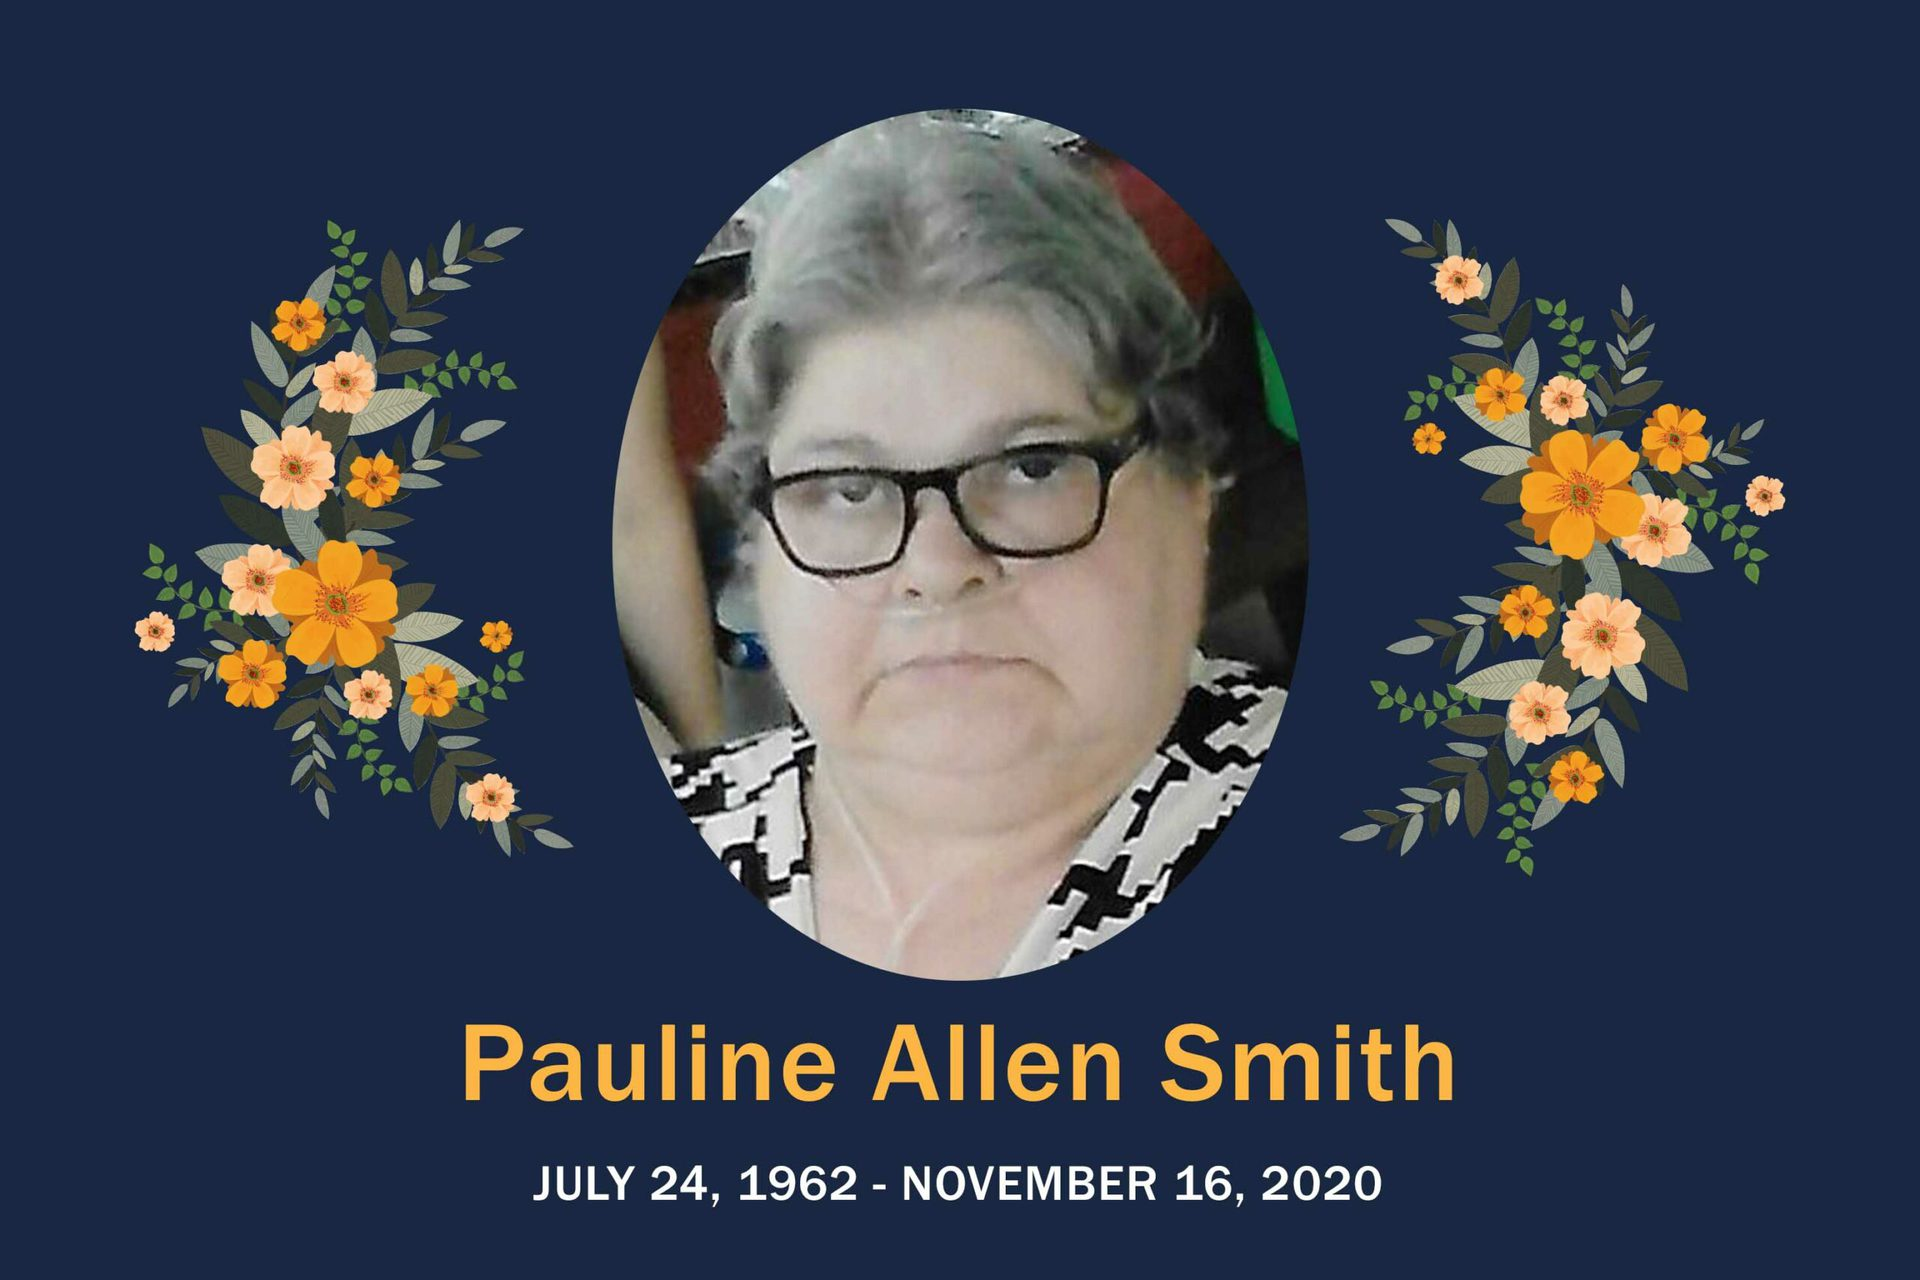 Obituary Pauline Smith